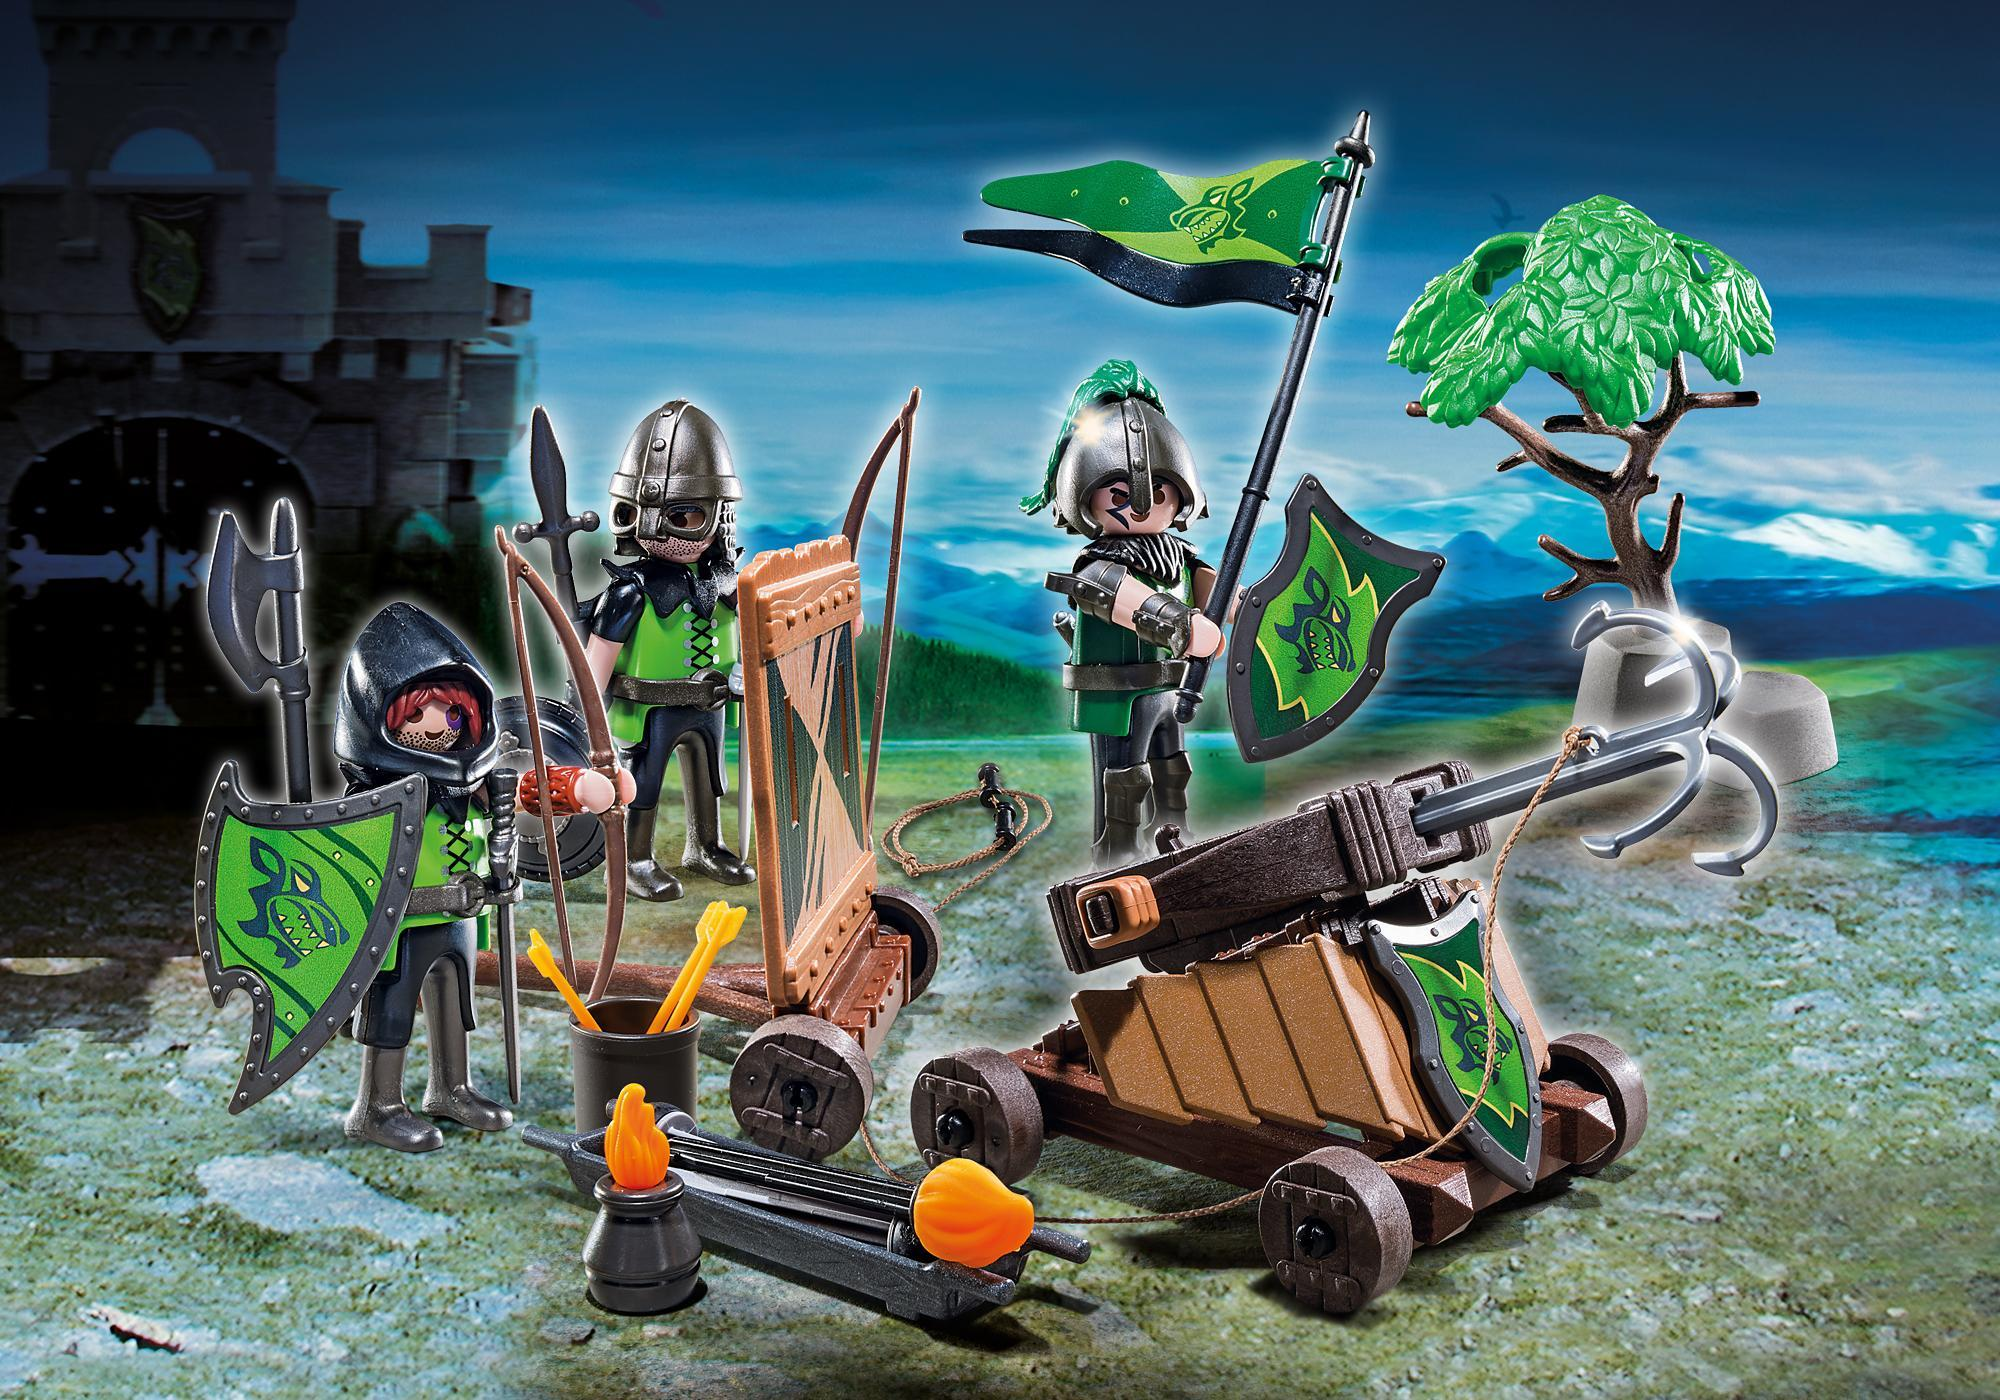 http://media.playmobil.com/i/playmobil/6041_product_detail